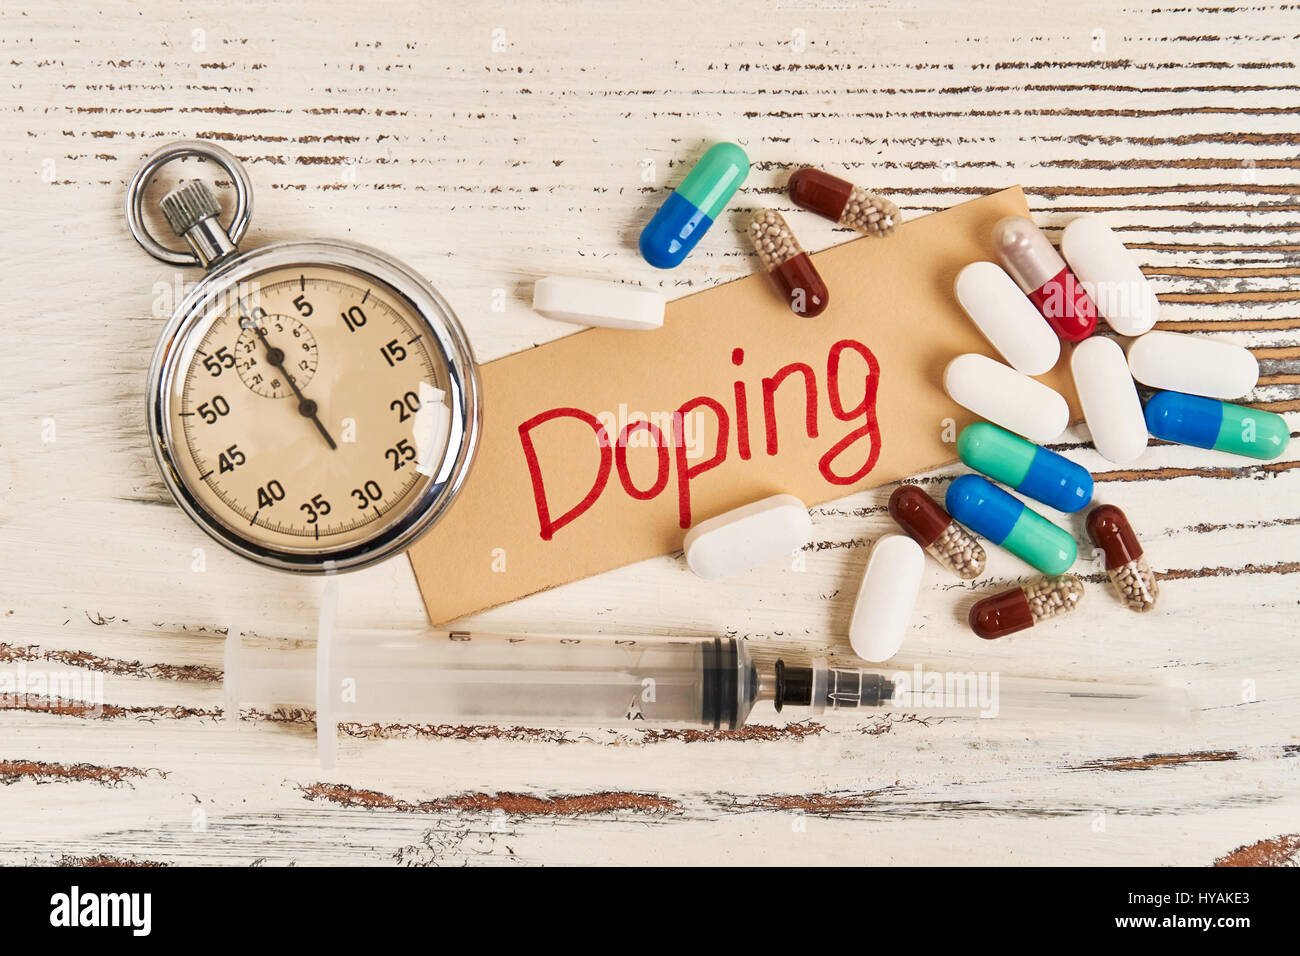 Stopwatch, syringe and pills. - Stock Image